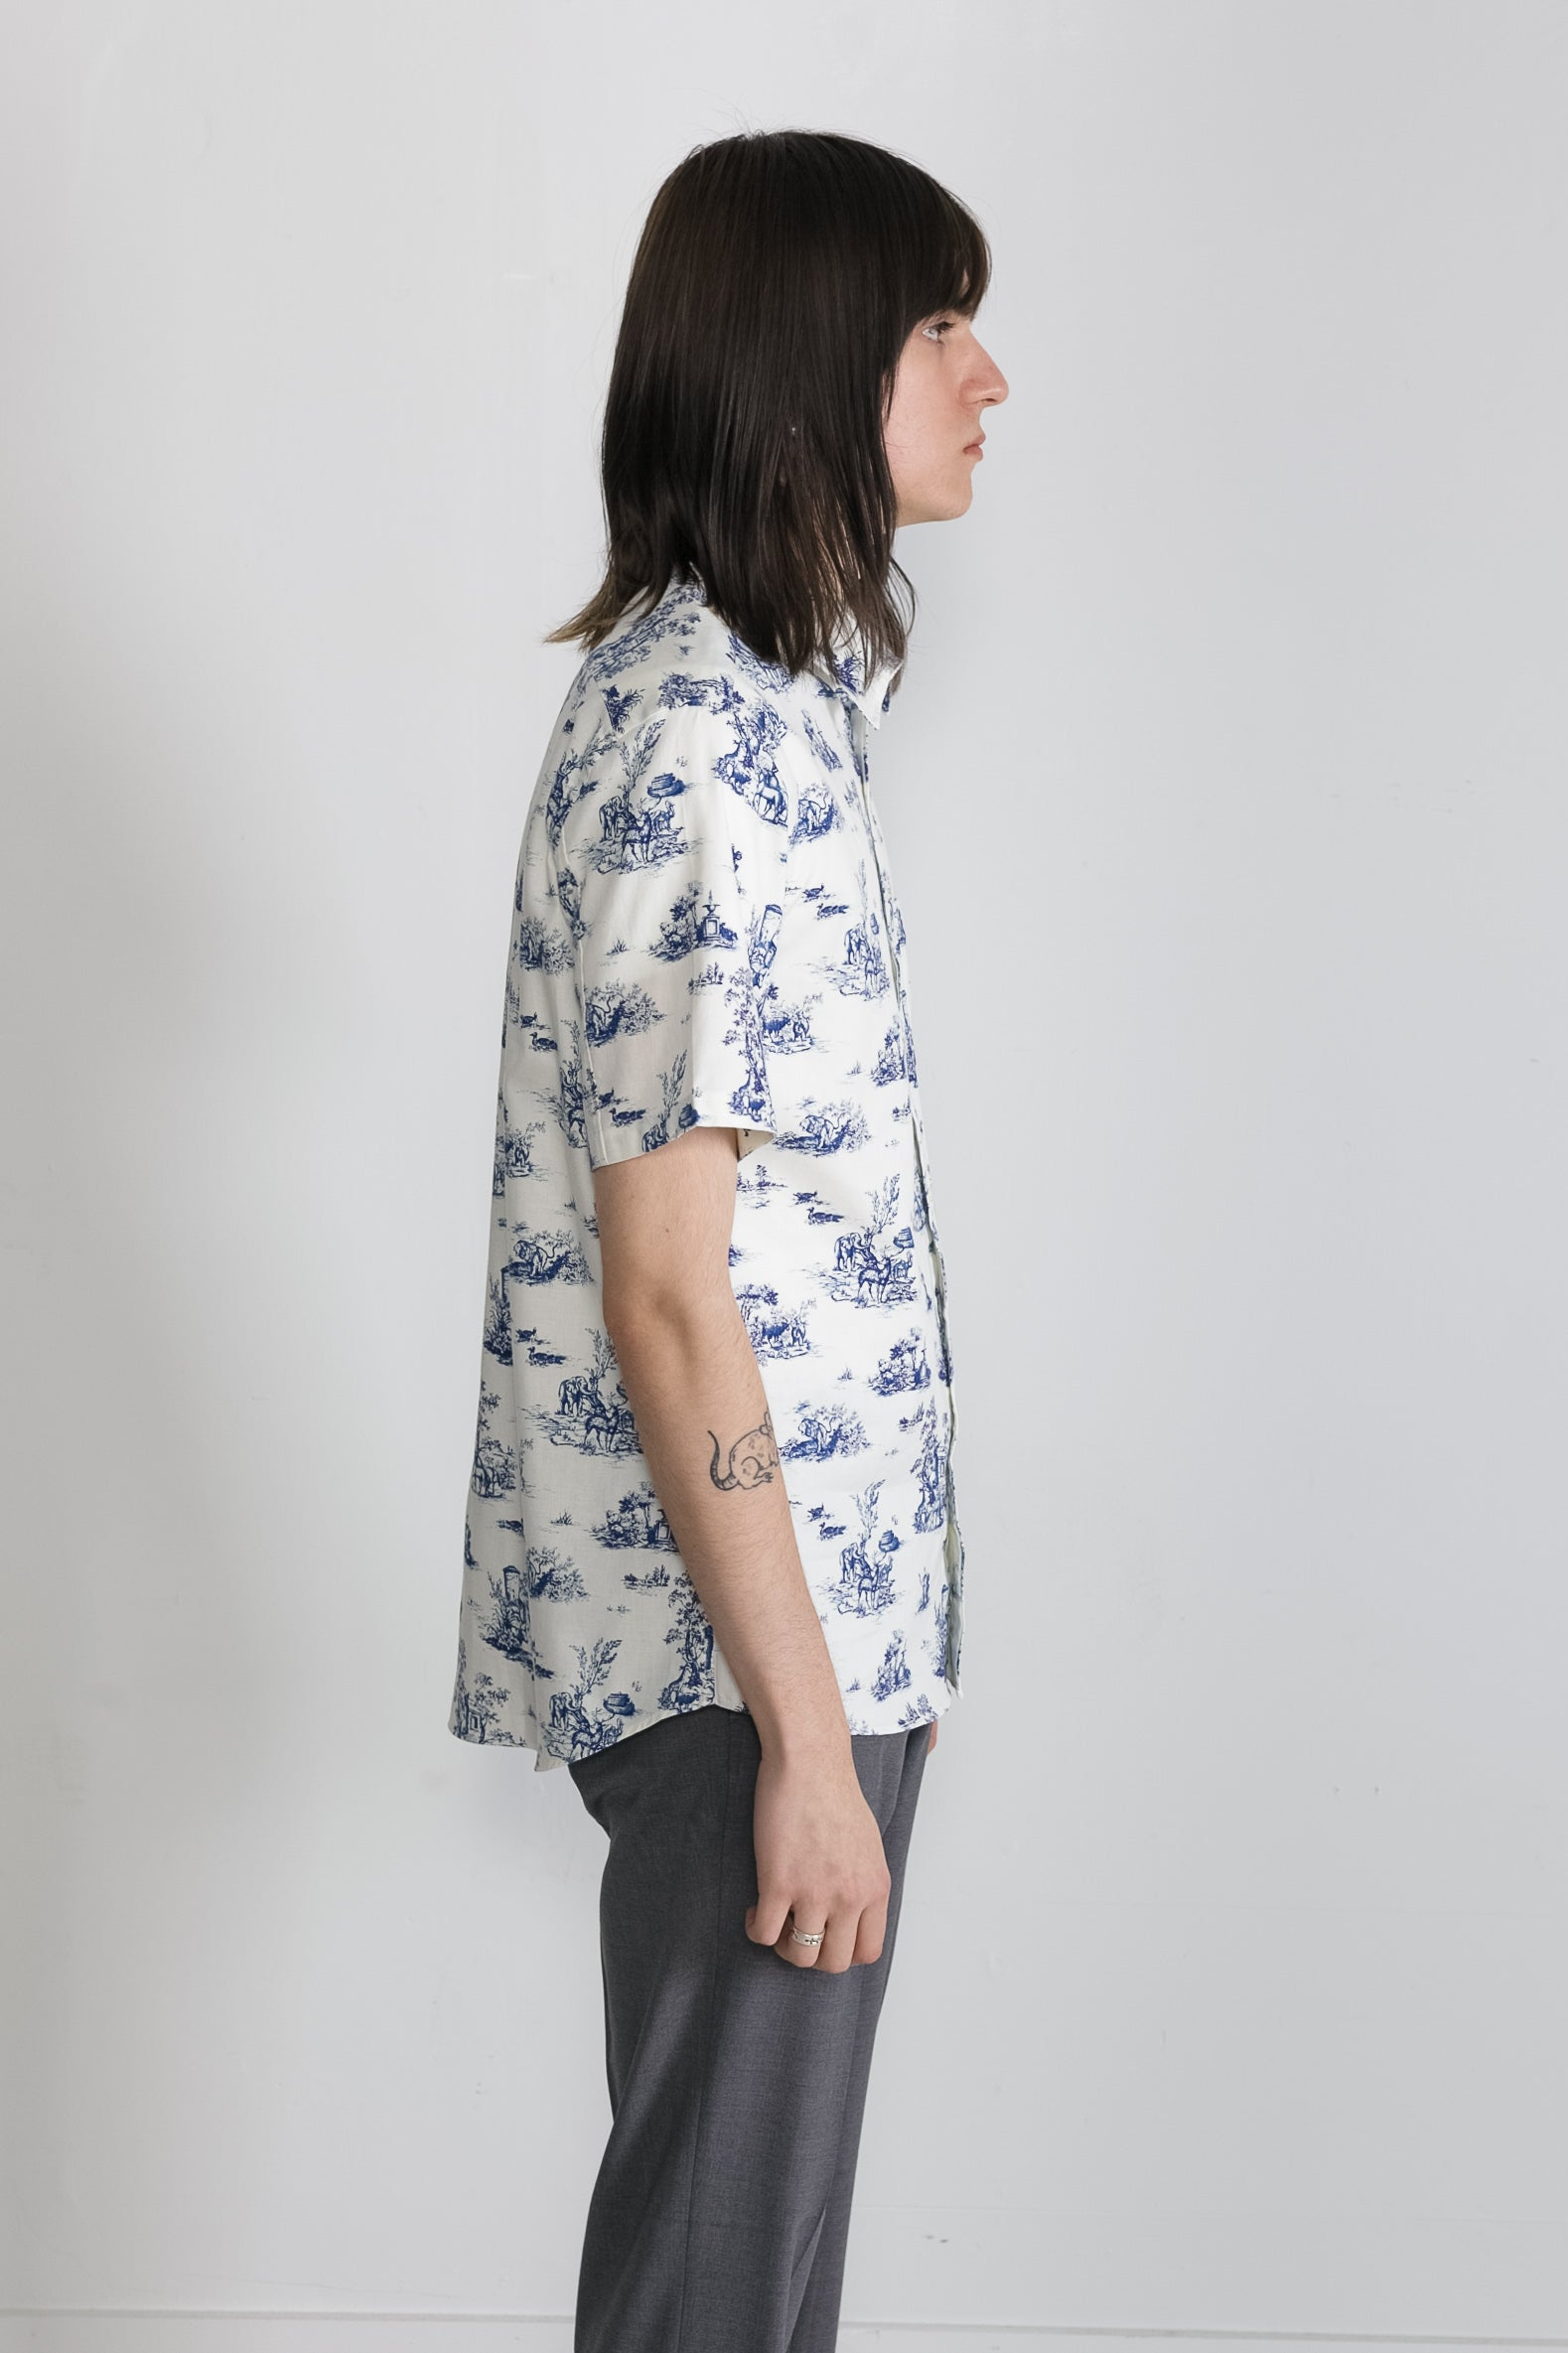 Japanese Safari Print in White and Blue 03